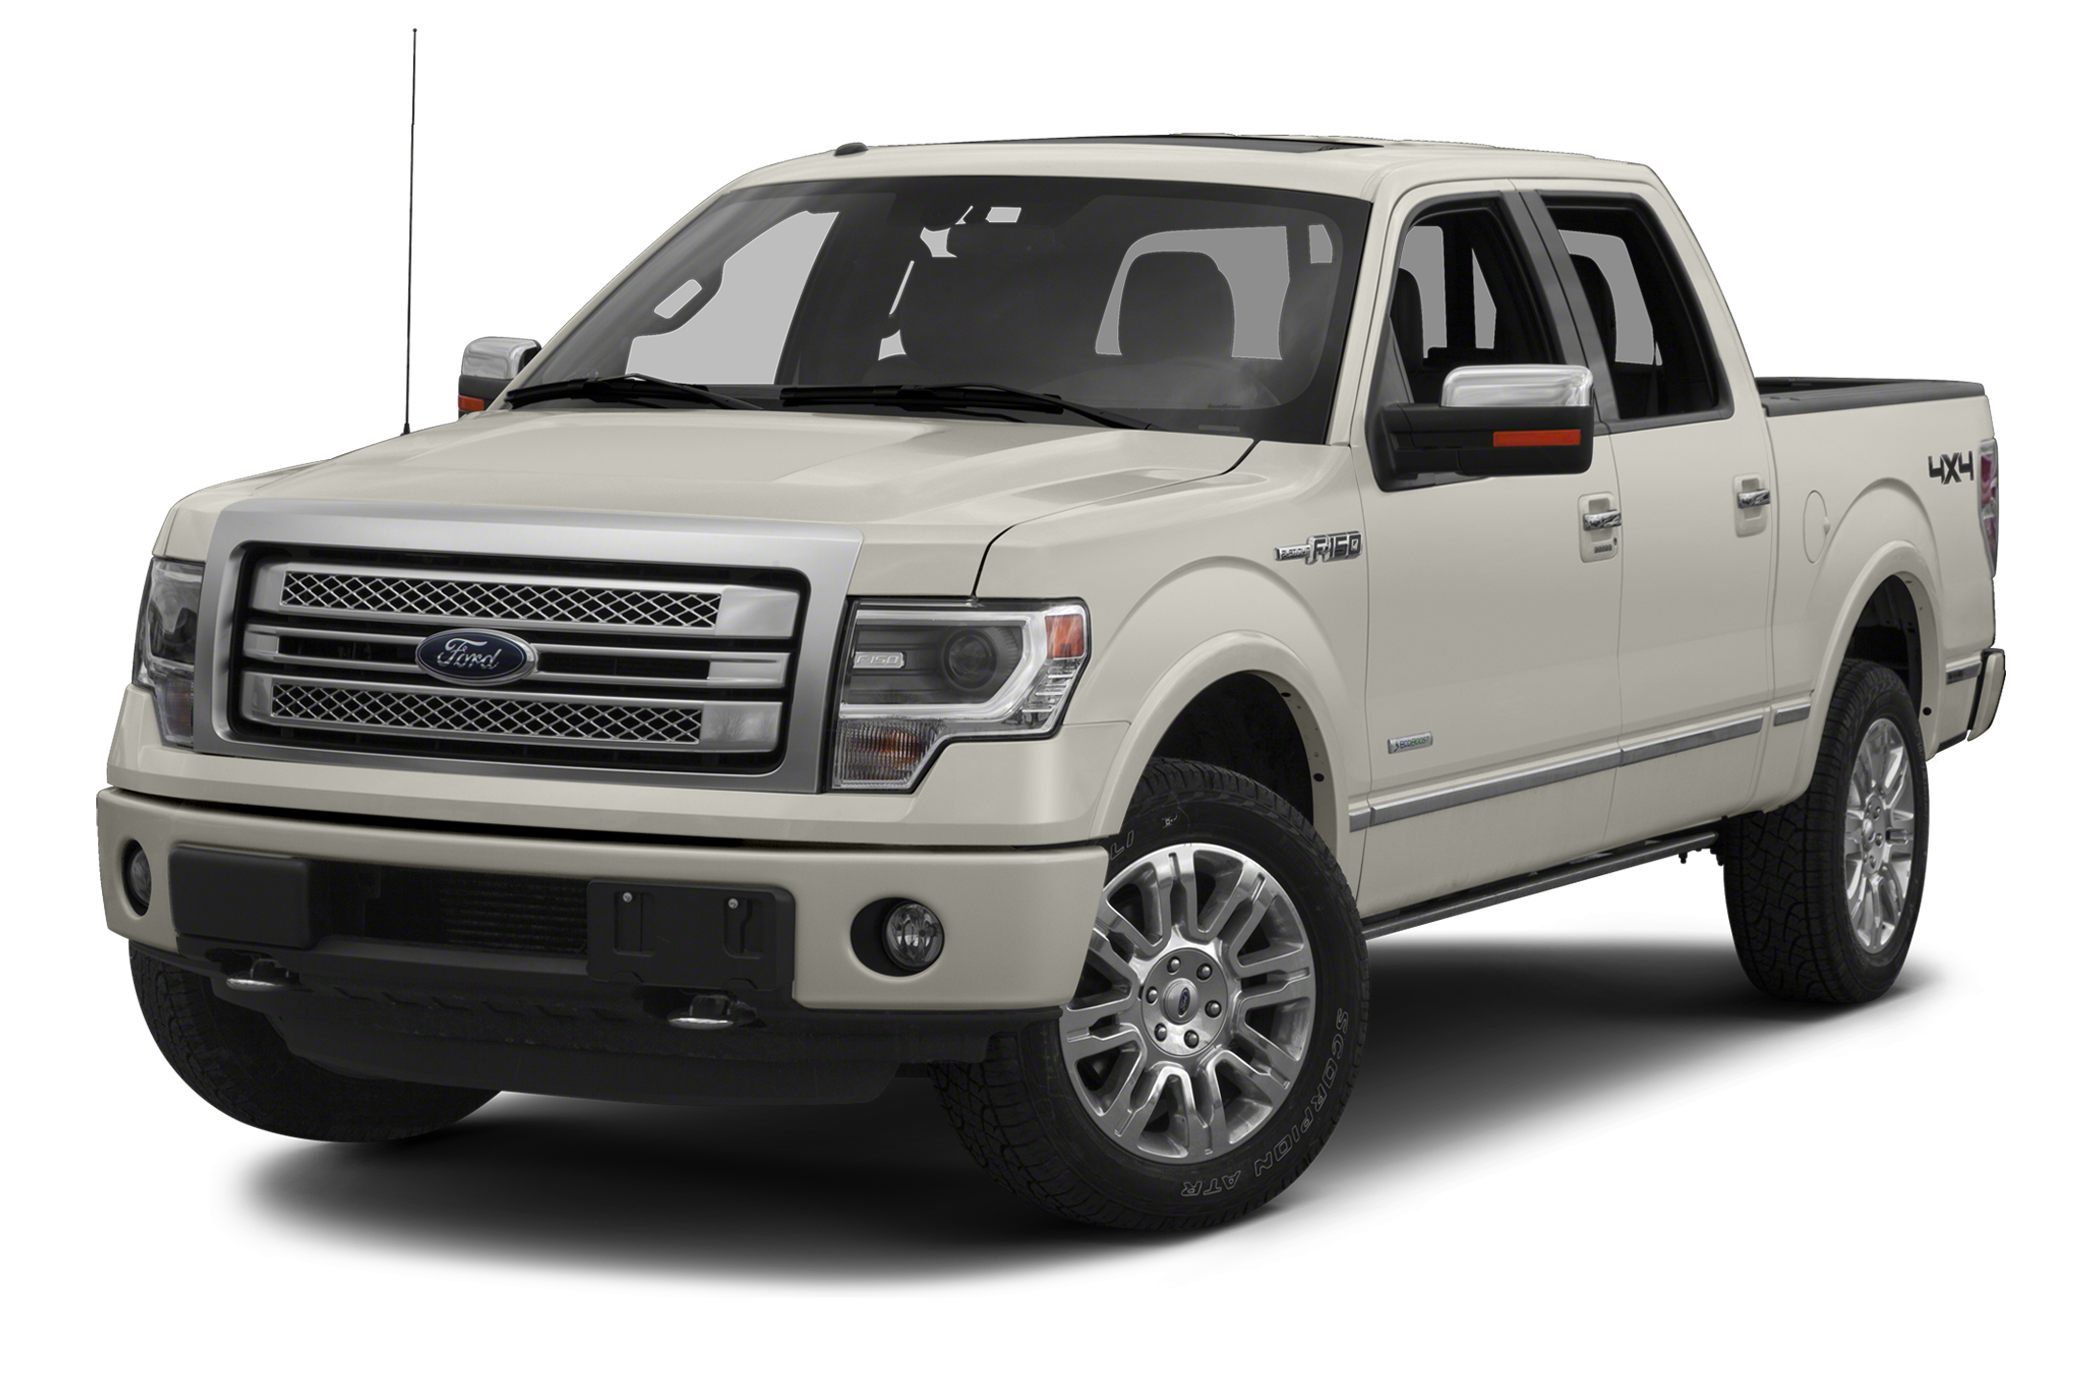 2013 Ford F 150 Platinum 4x4 Supercrew Cab Styleside 5 5 Ft Box 145 In Wb Specs And Prices